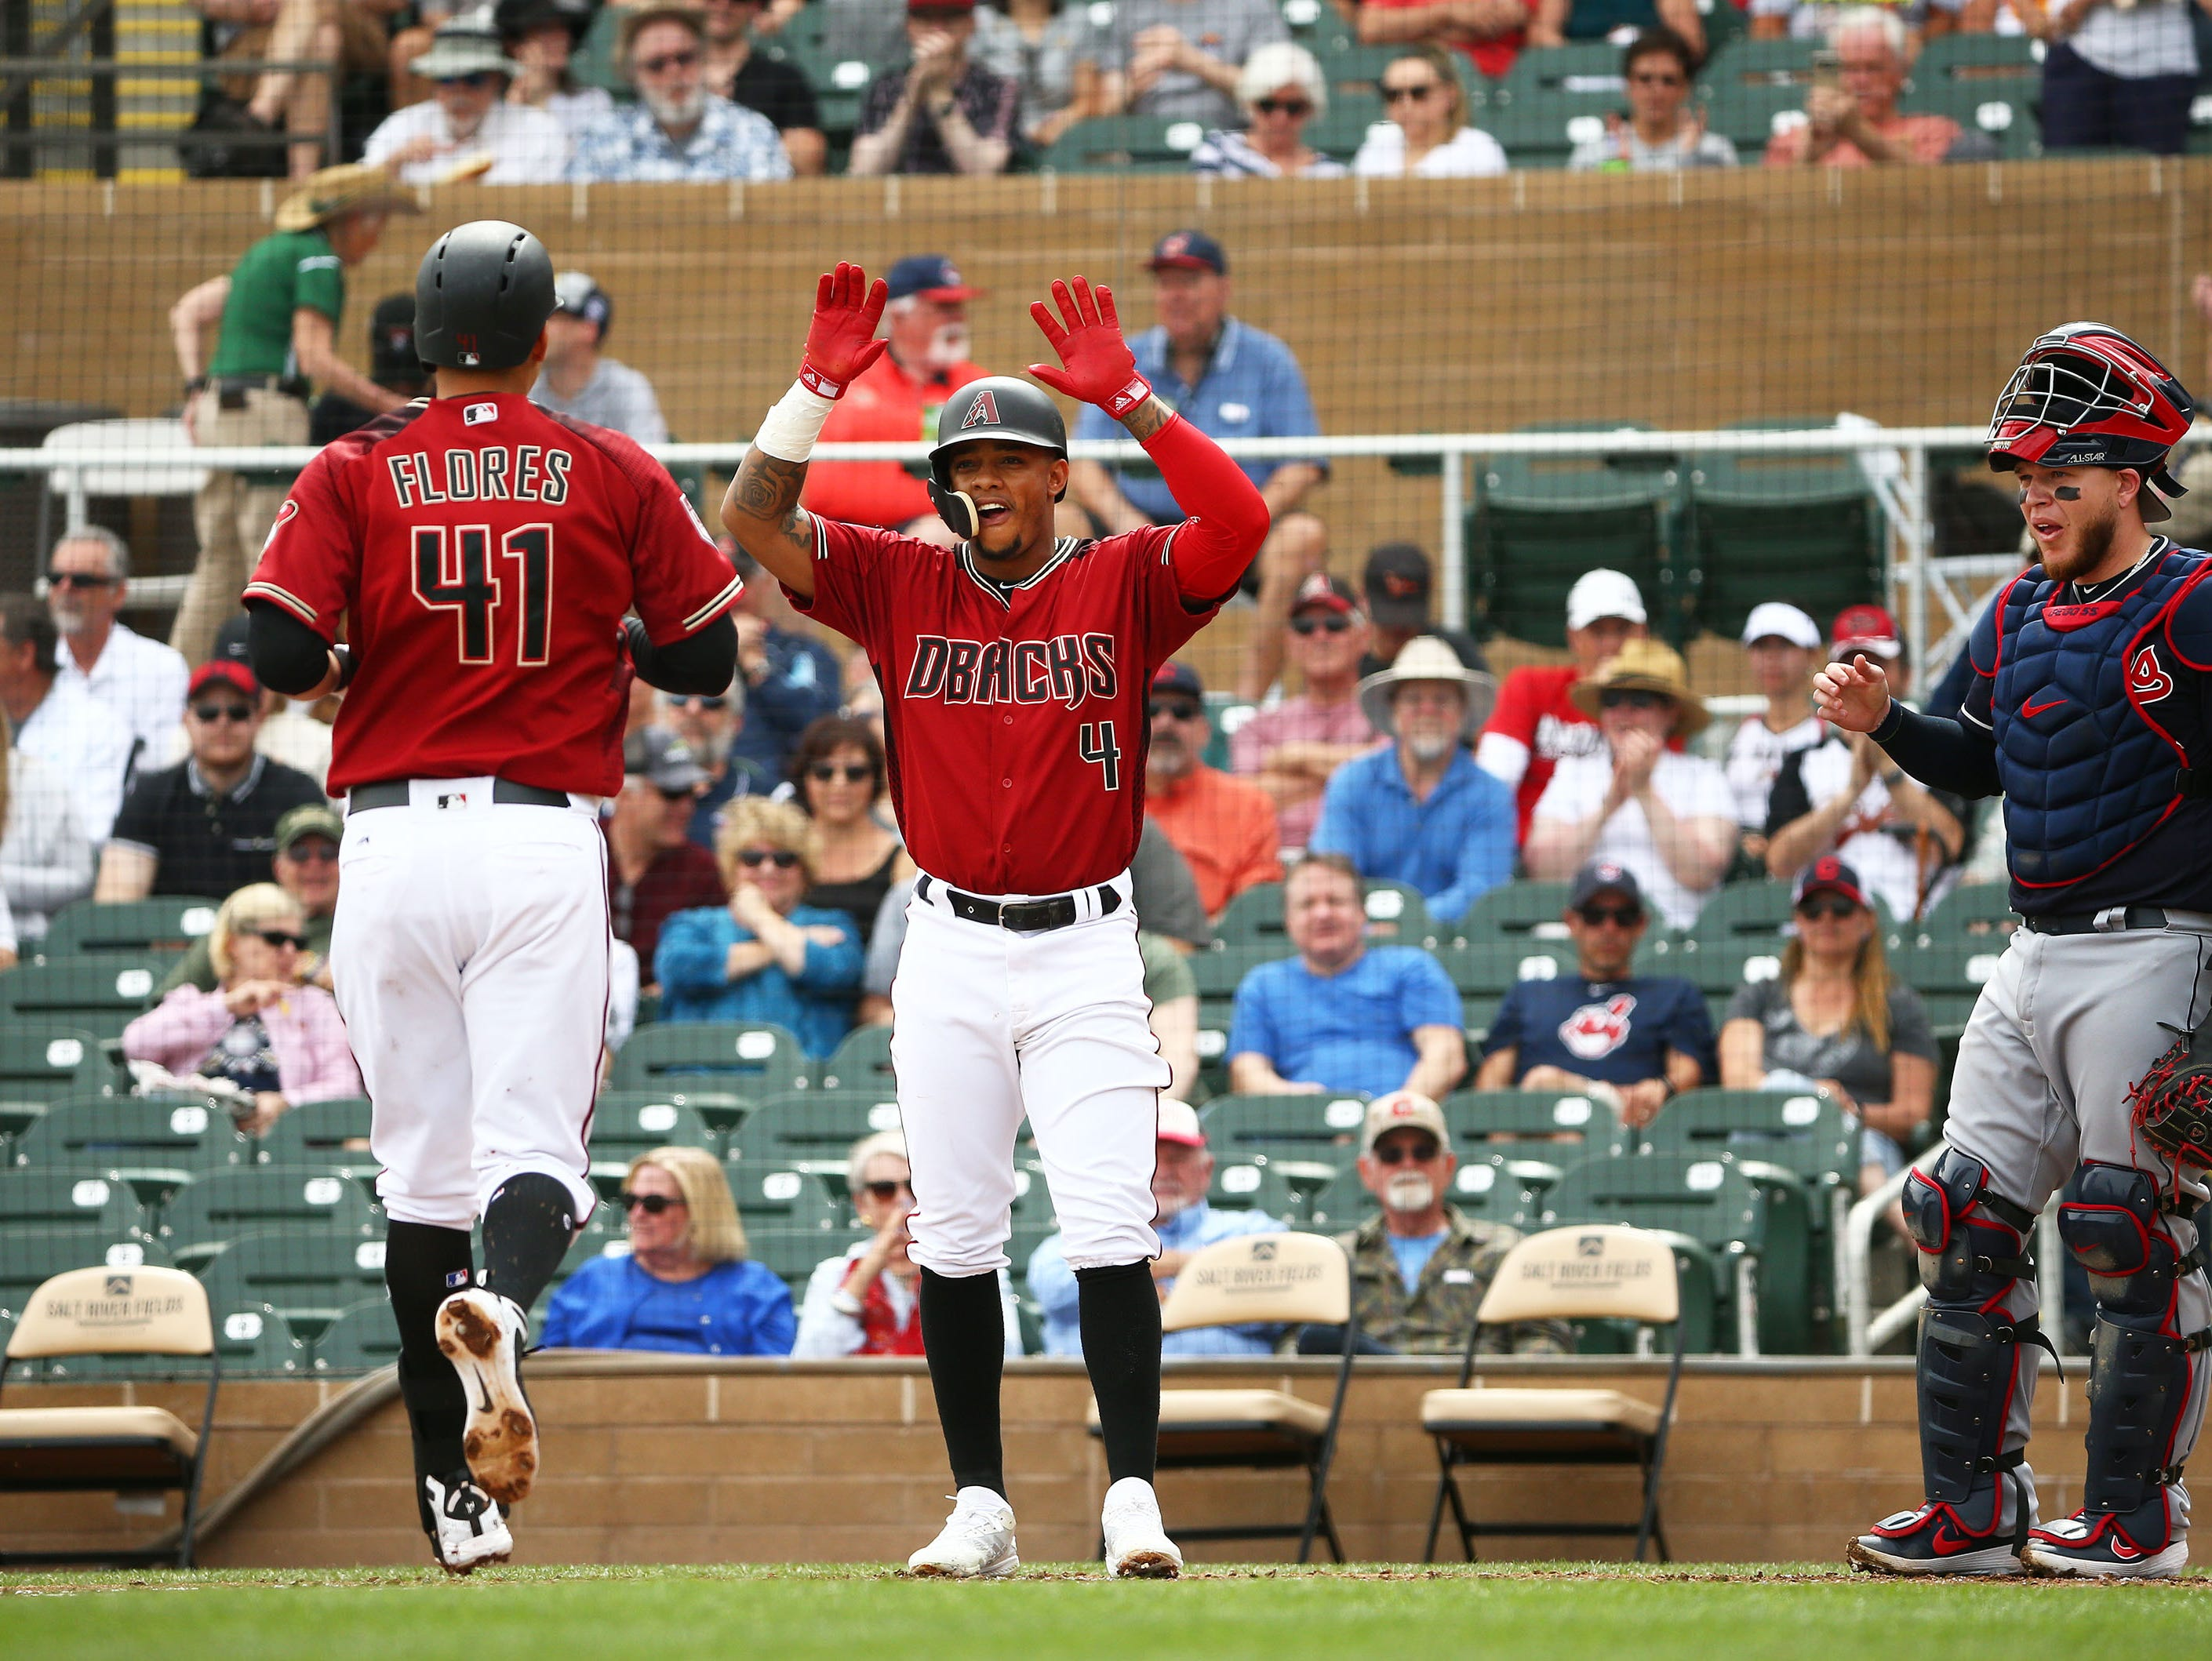 Arizona Diamondbacks Wilmer Flores (41) scores after hitting a two-run home run against the Cleveland Indians in the 1st inning during a spring training game on Mar. 7, 2019 at Salt River Fields in Scottsdale, Ariz.